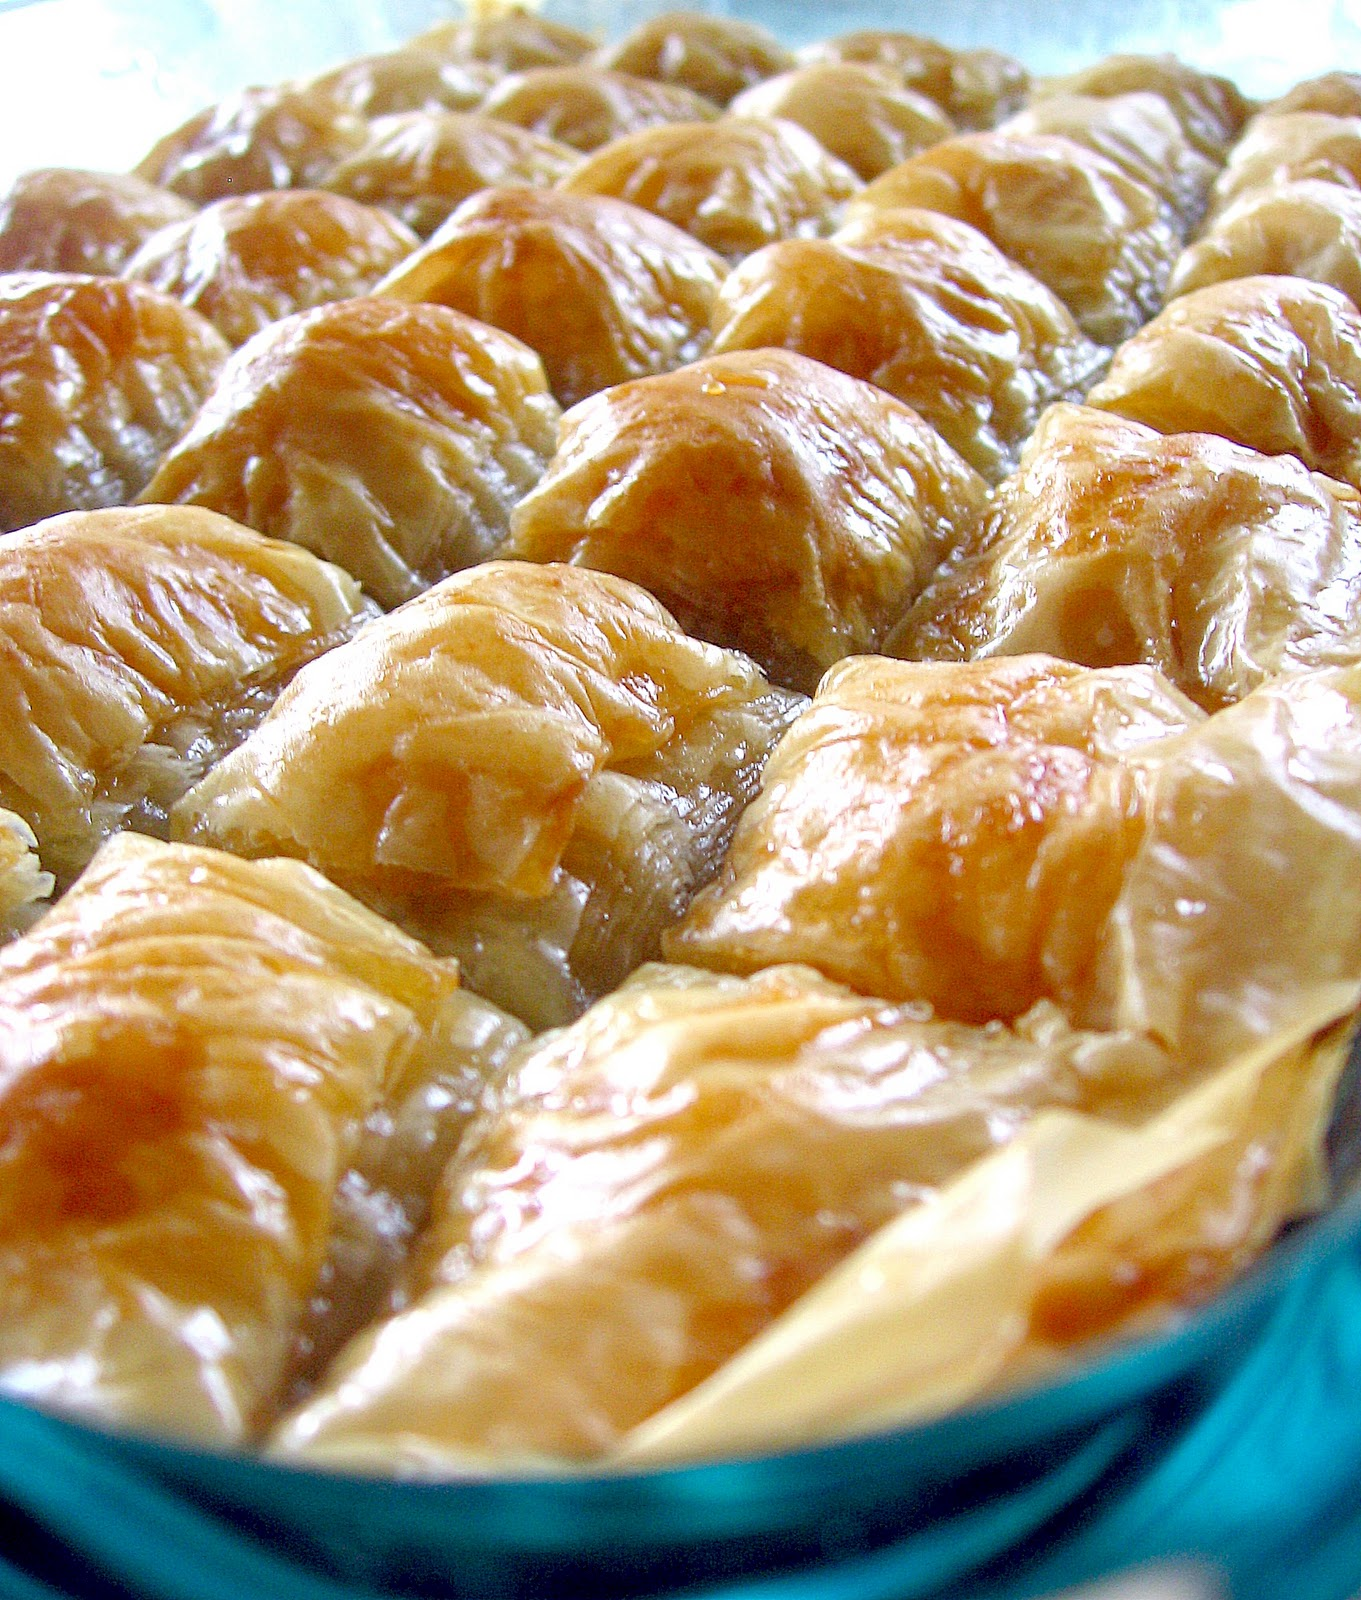 My Turkish Kitchen: CEVİZLİ BAKLAVA